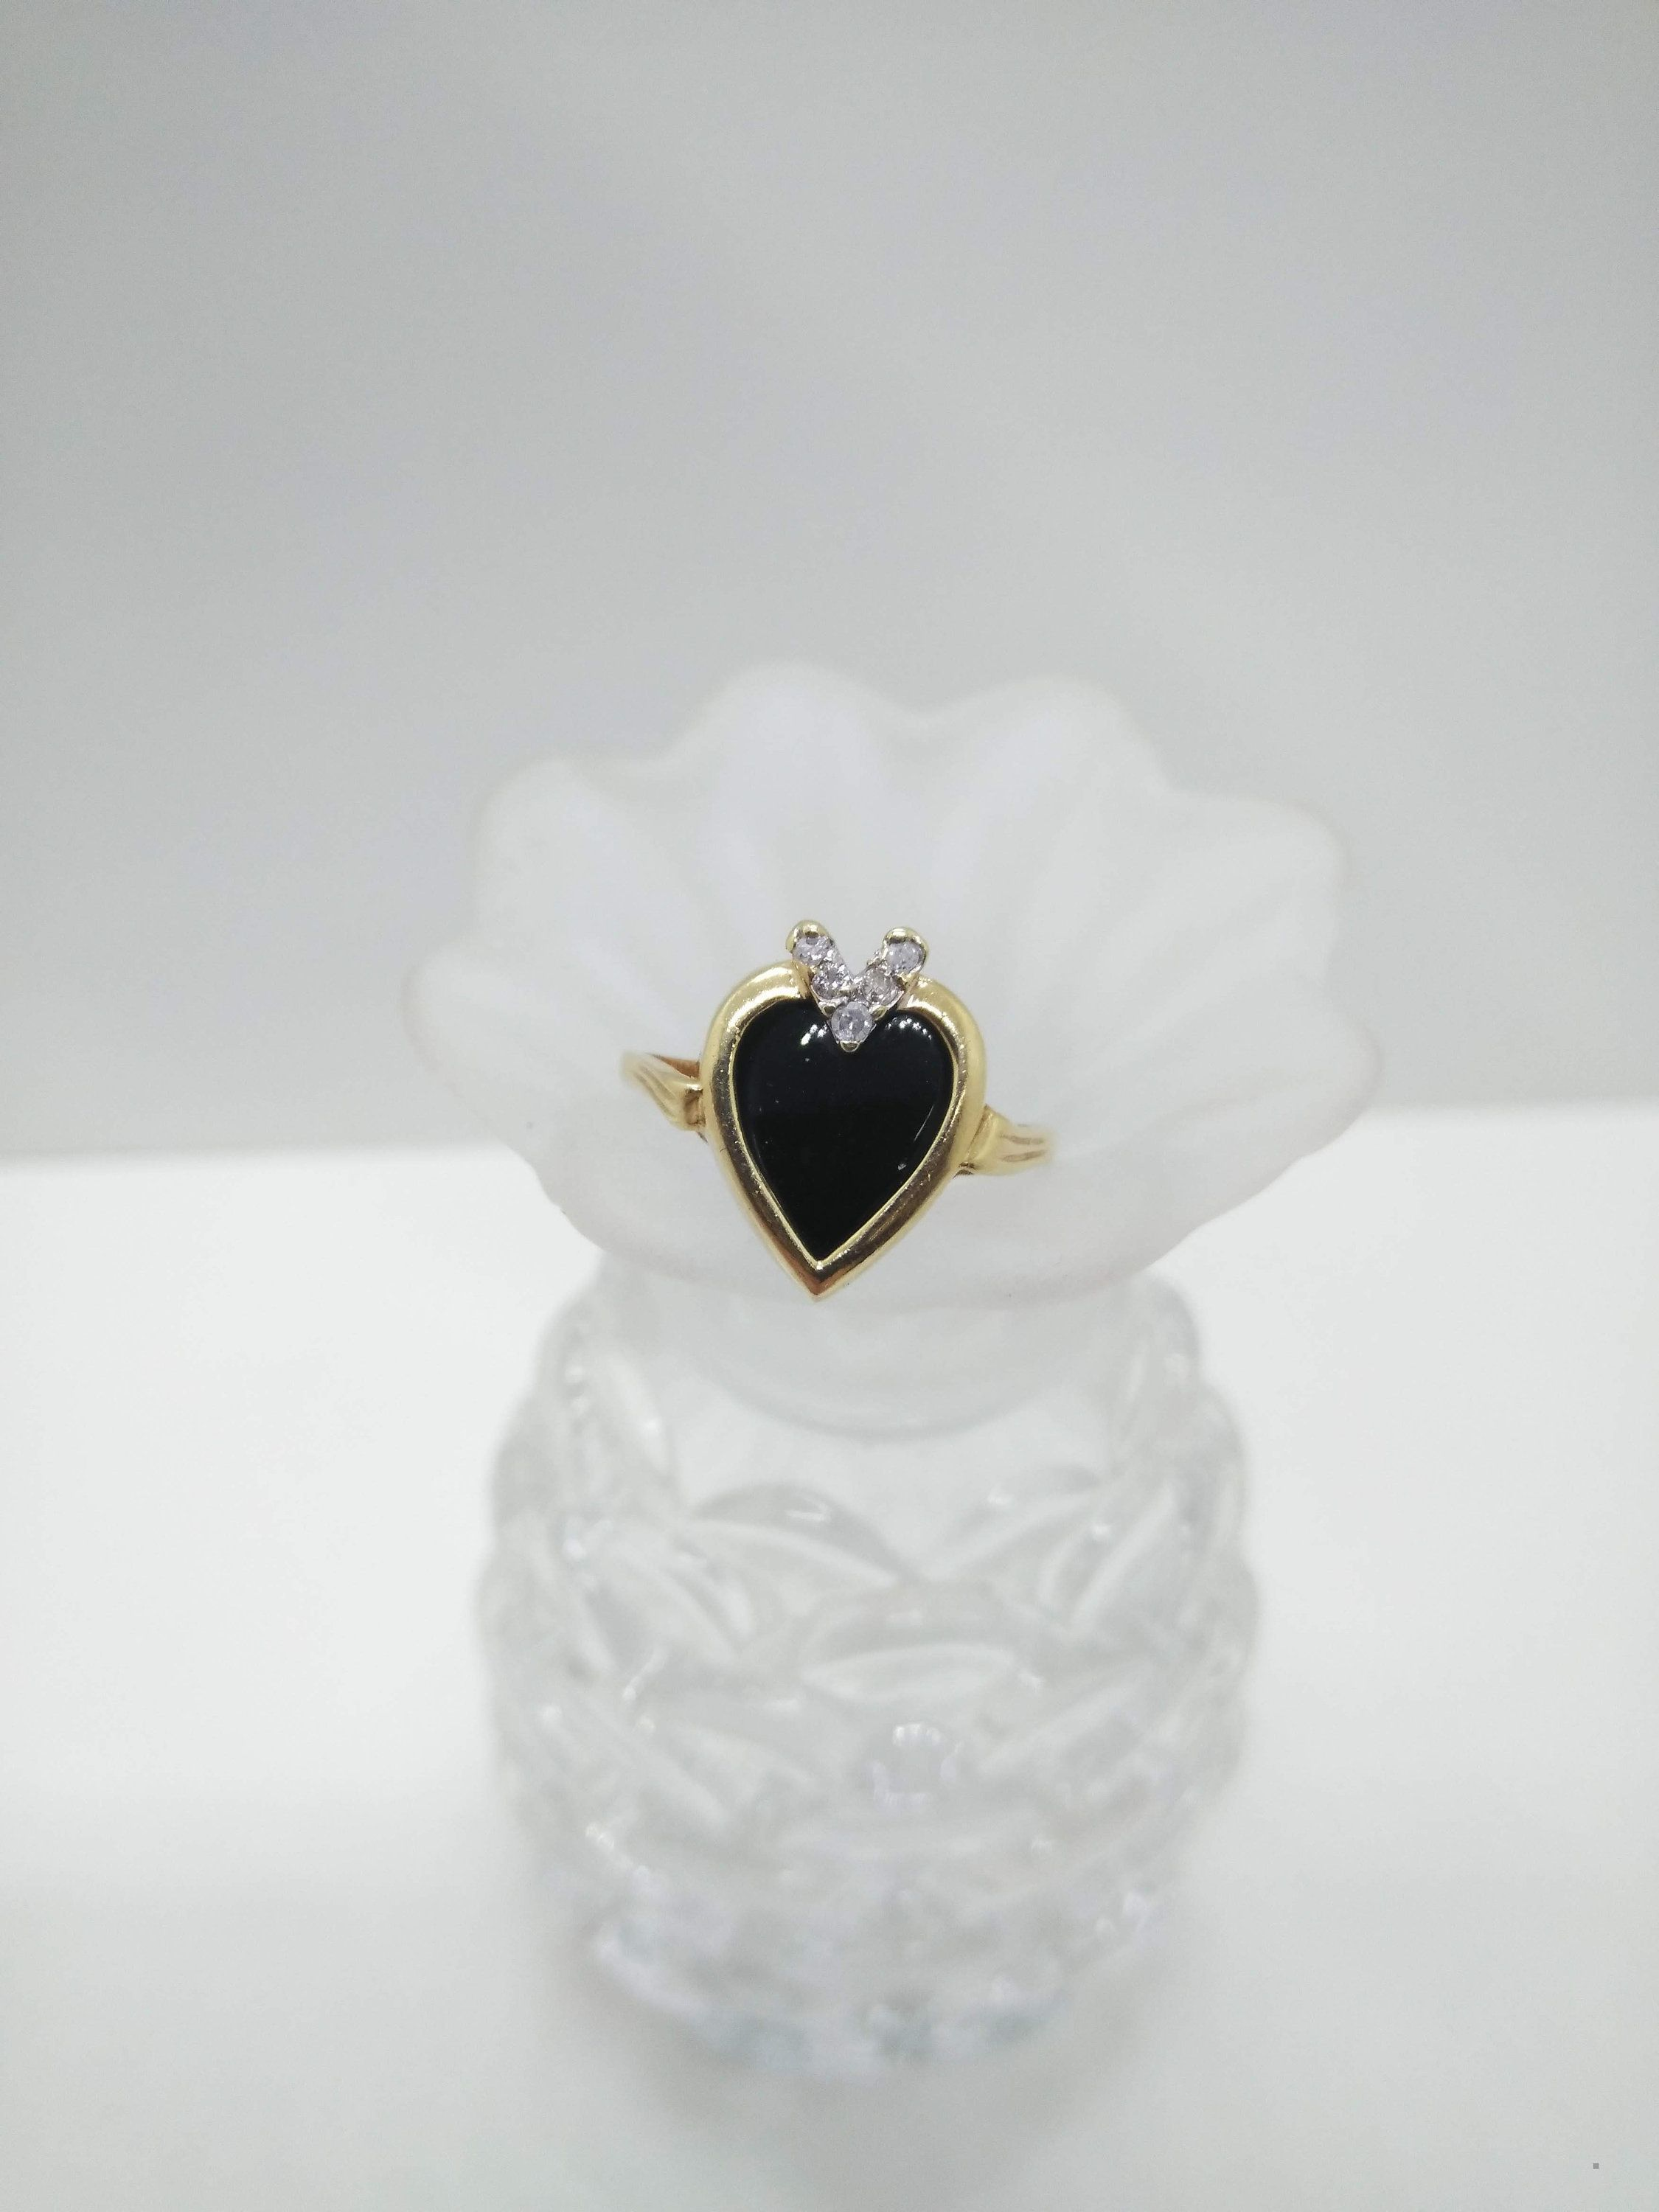 10k Gold Diamond Black Onyx Heart Ring Size 5 1 2 Solid 10k Yellow Gold Ring In 2020 Diamond Heart Rings Yellow Gold Rings